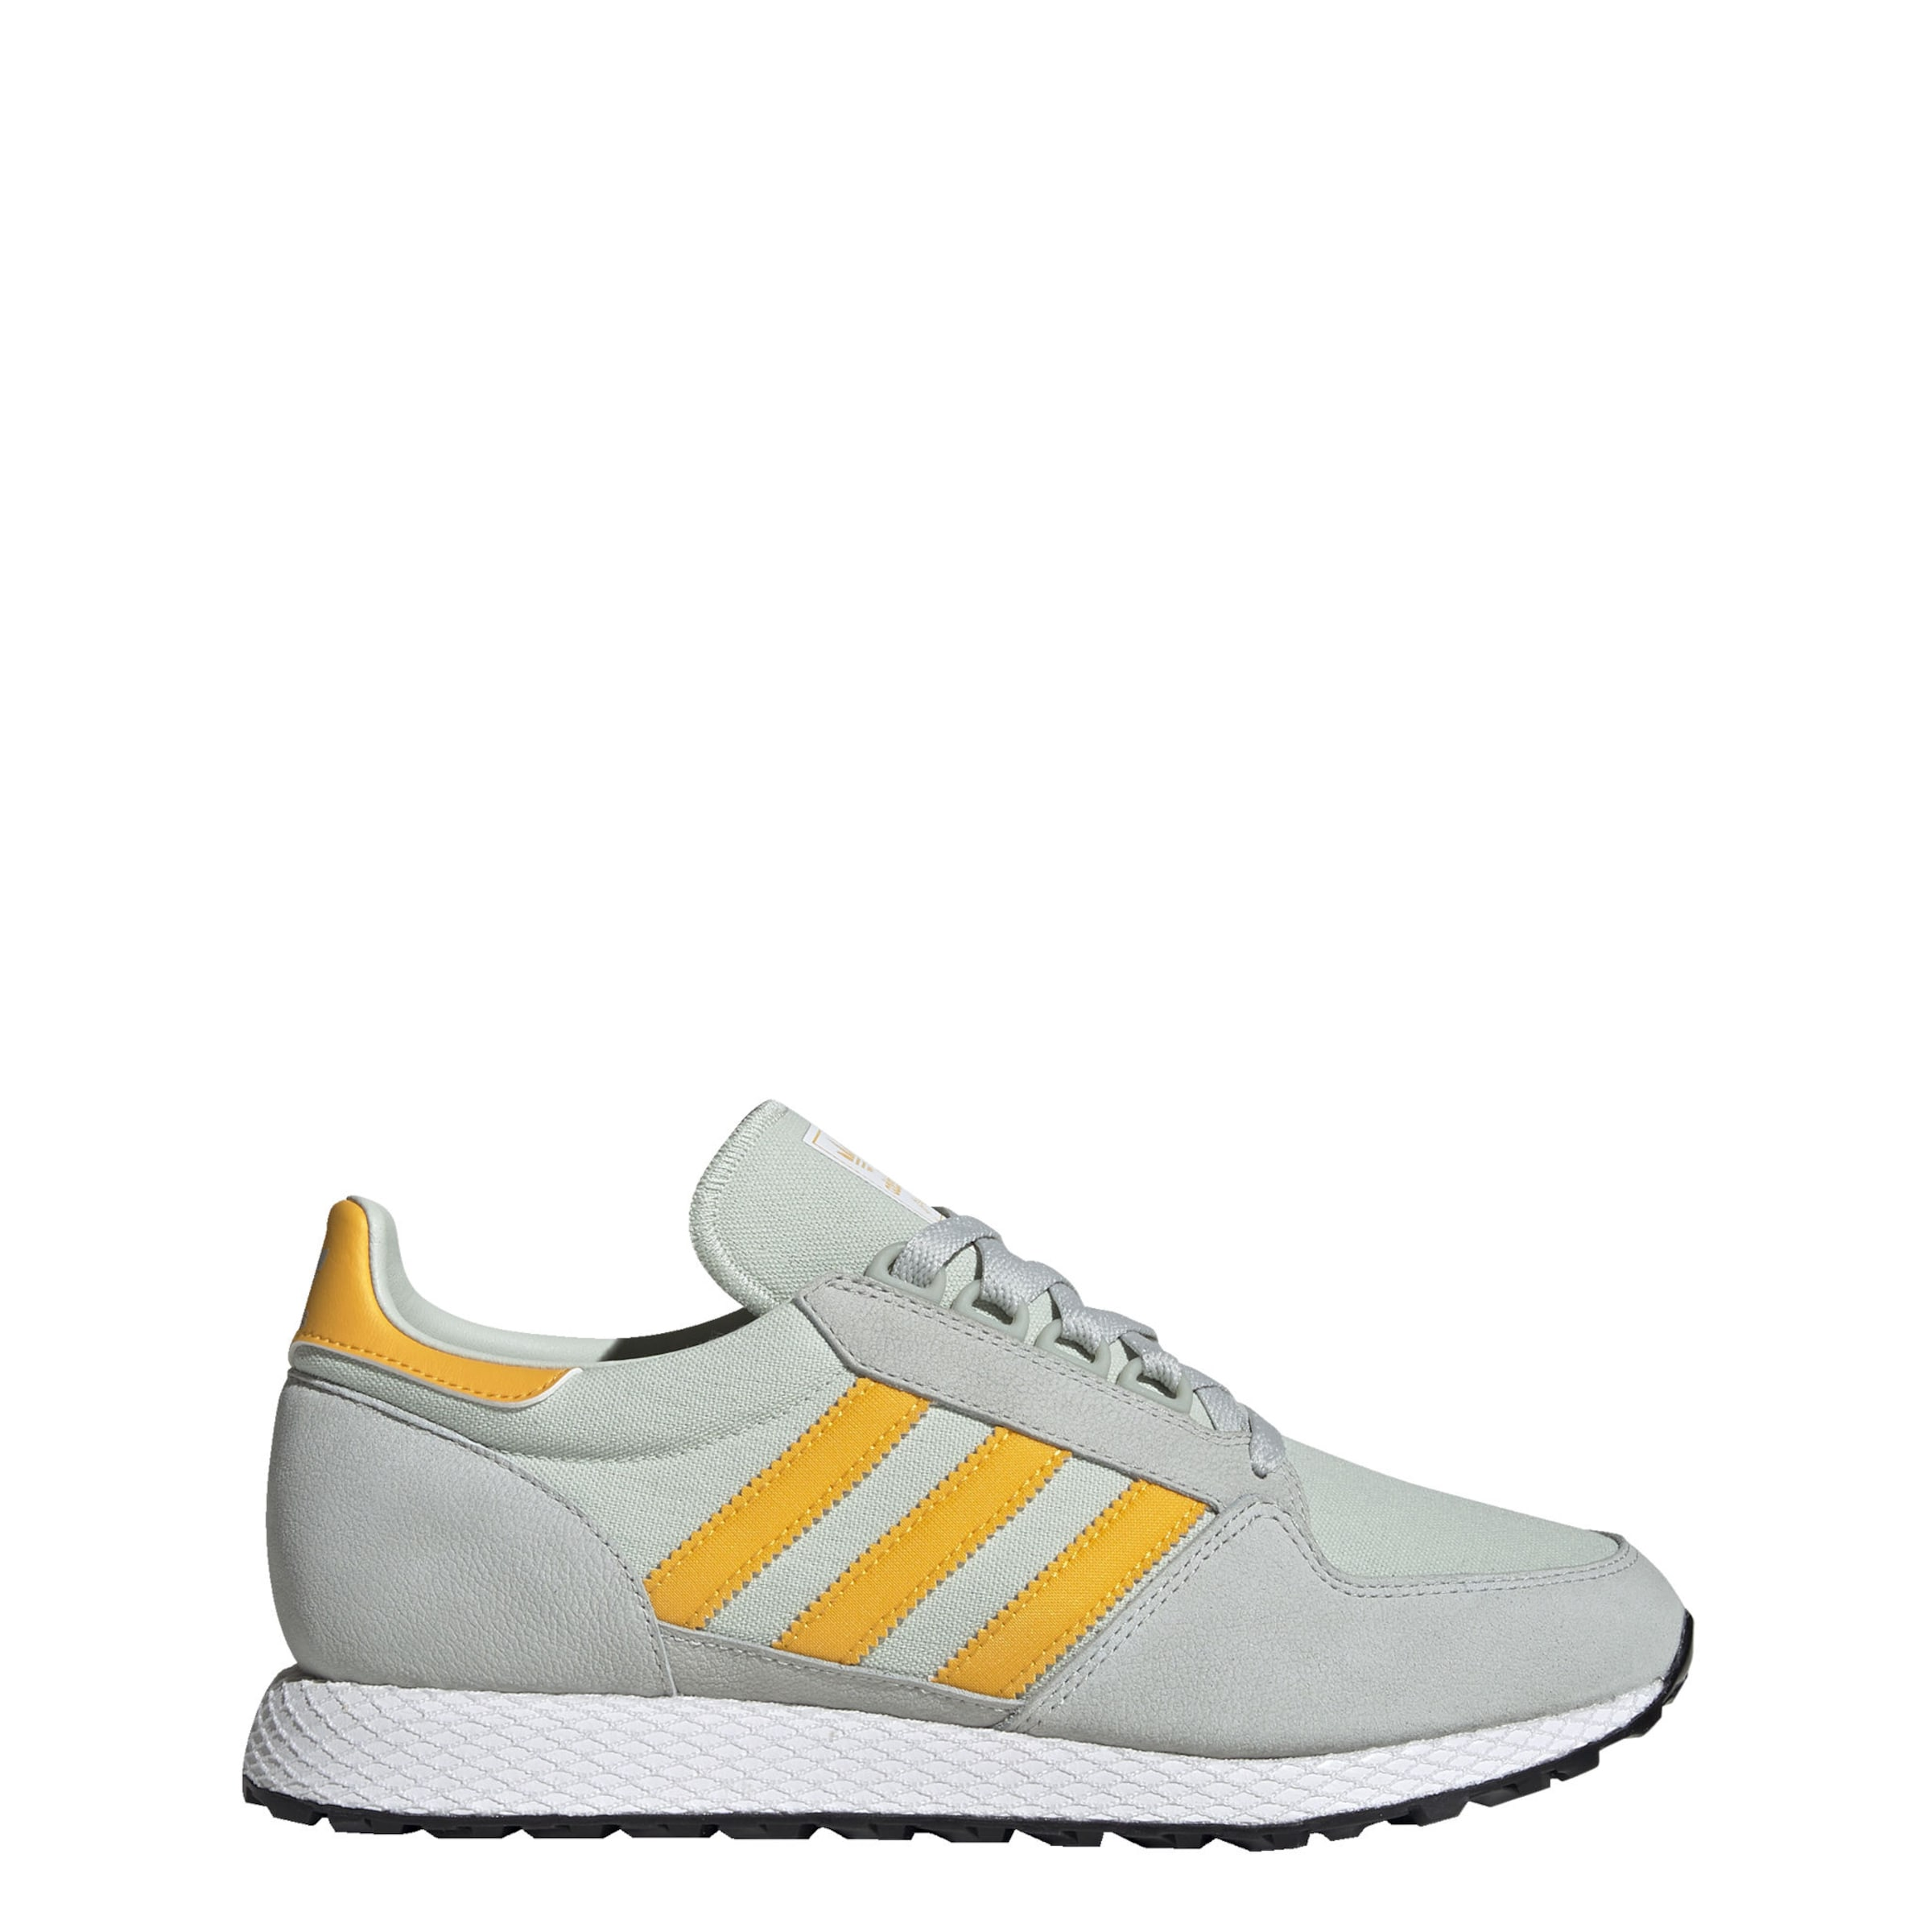 In 'forest Orange HellgrauMint Originals Schuh Adidas Grove' A5LRj34q